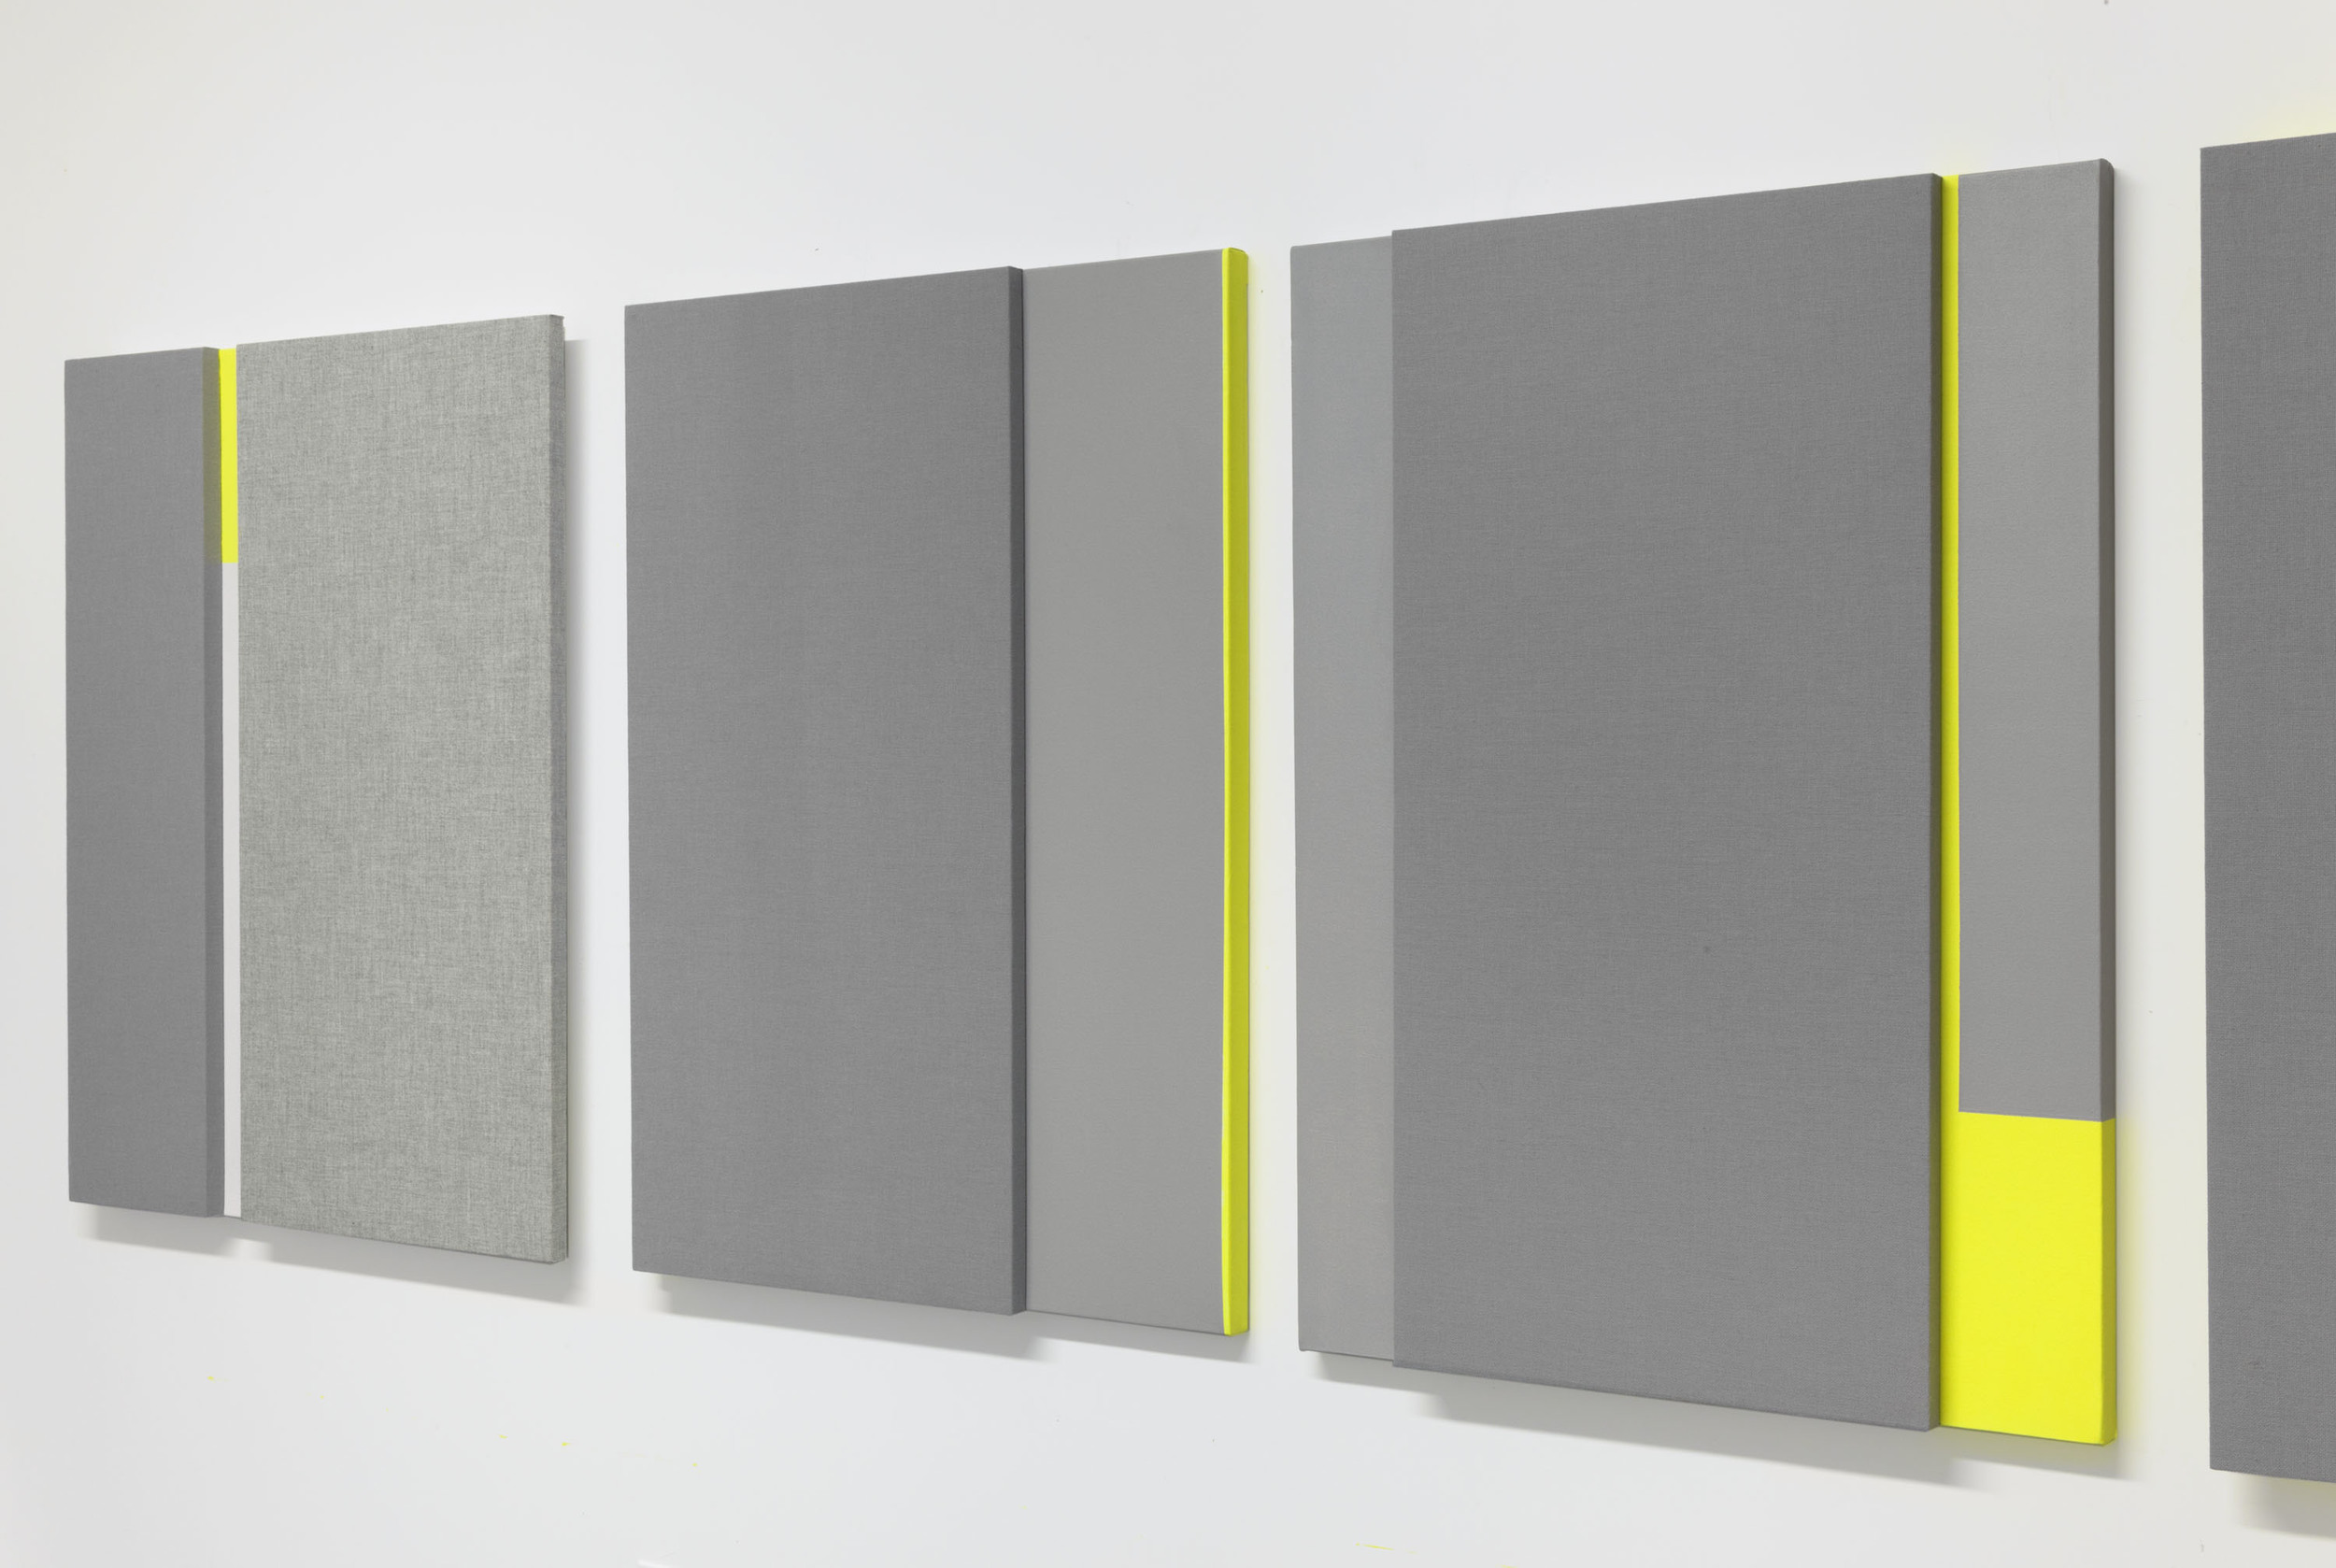 Soft Gray Tone with Reverberation #1-3 --Acoustic absorber panel and acrylic paint on canvas, 36 x 48 inches each, 2013.